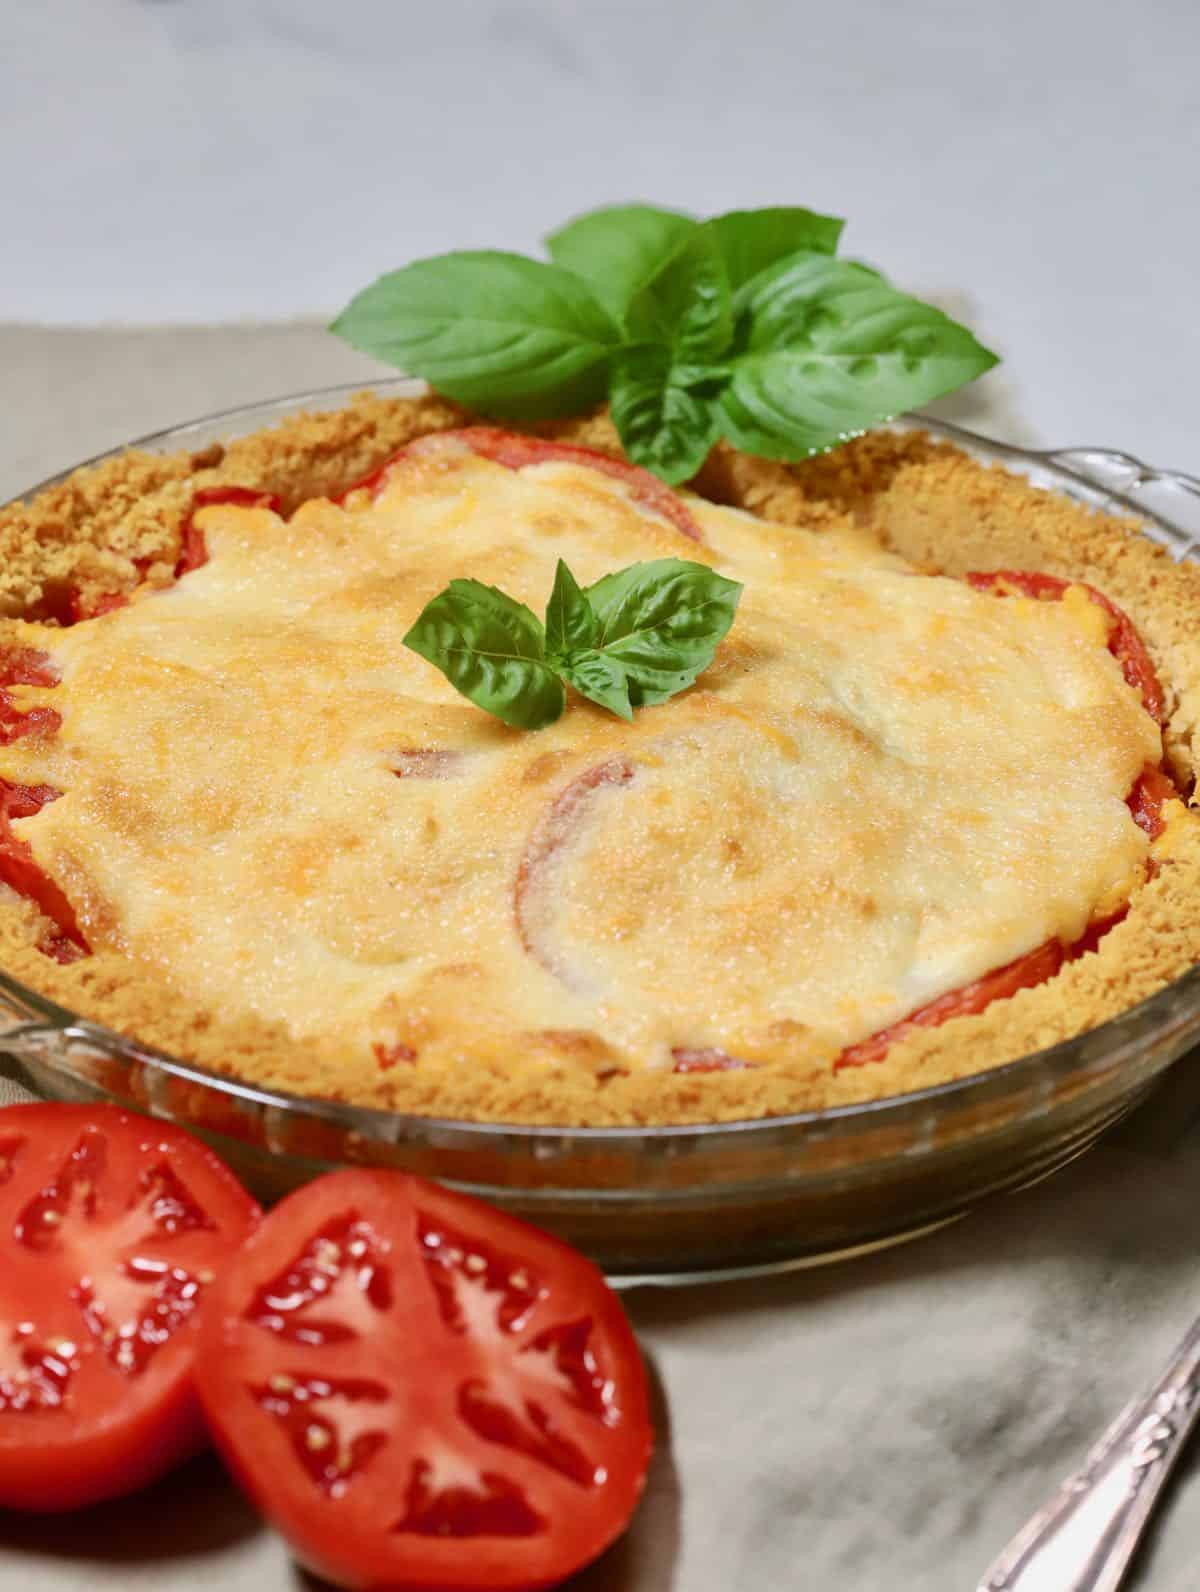 A tomato pie garnished with a sprig of basil.